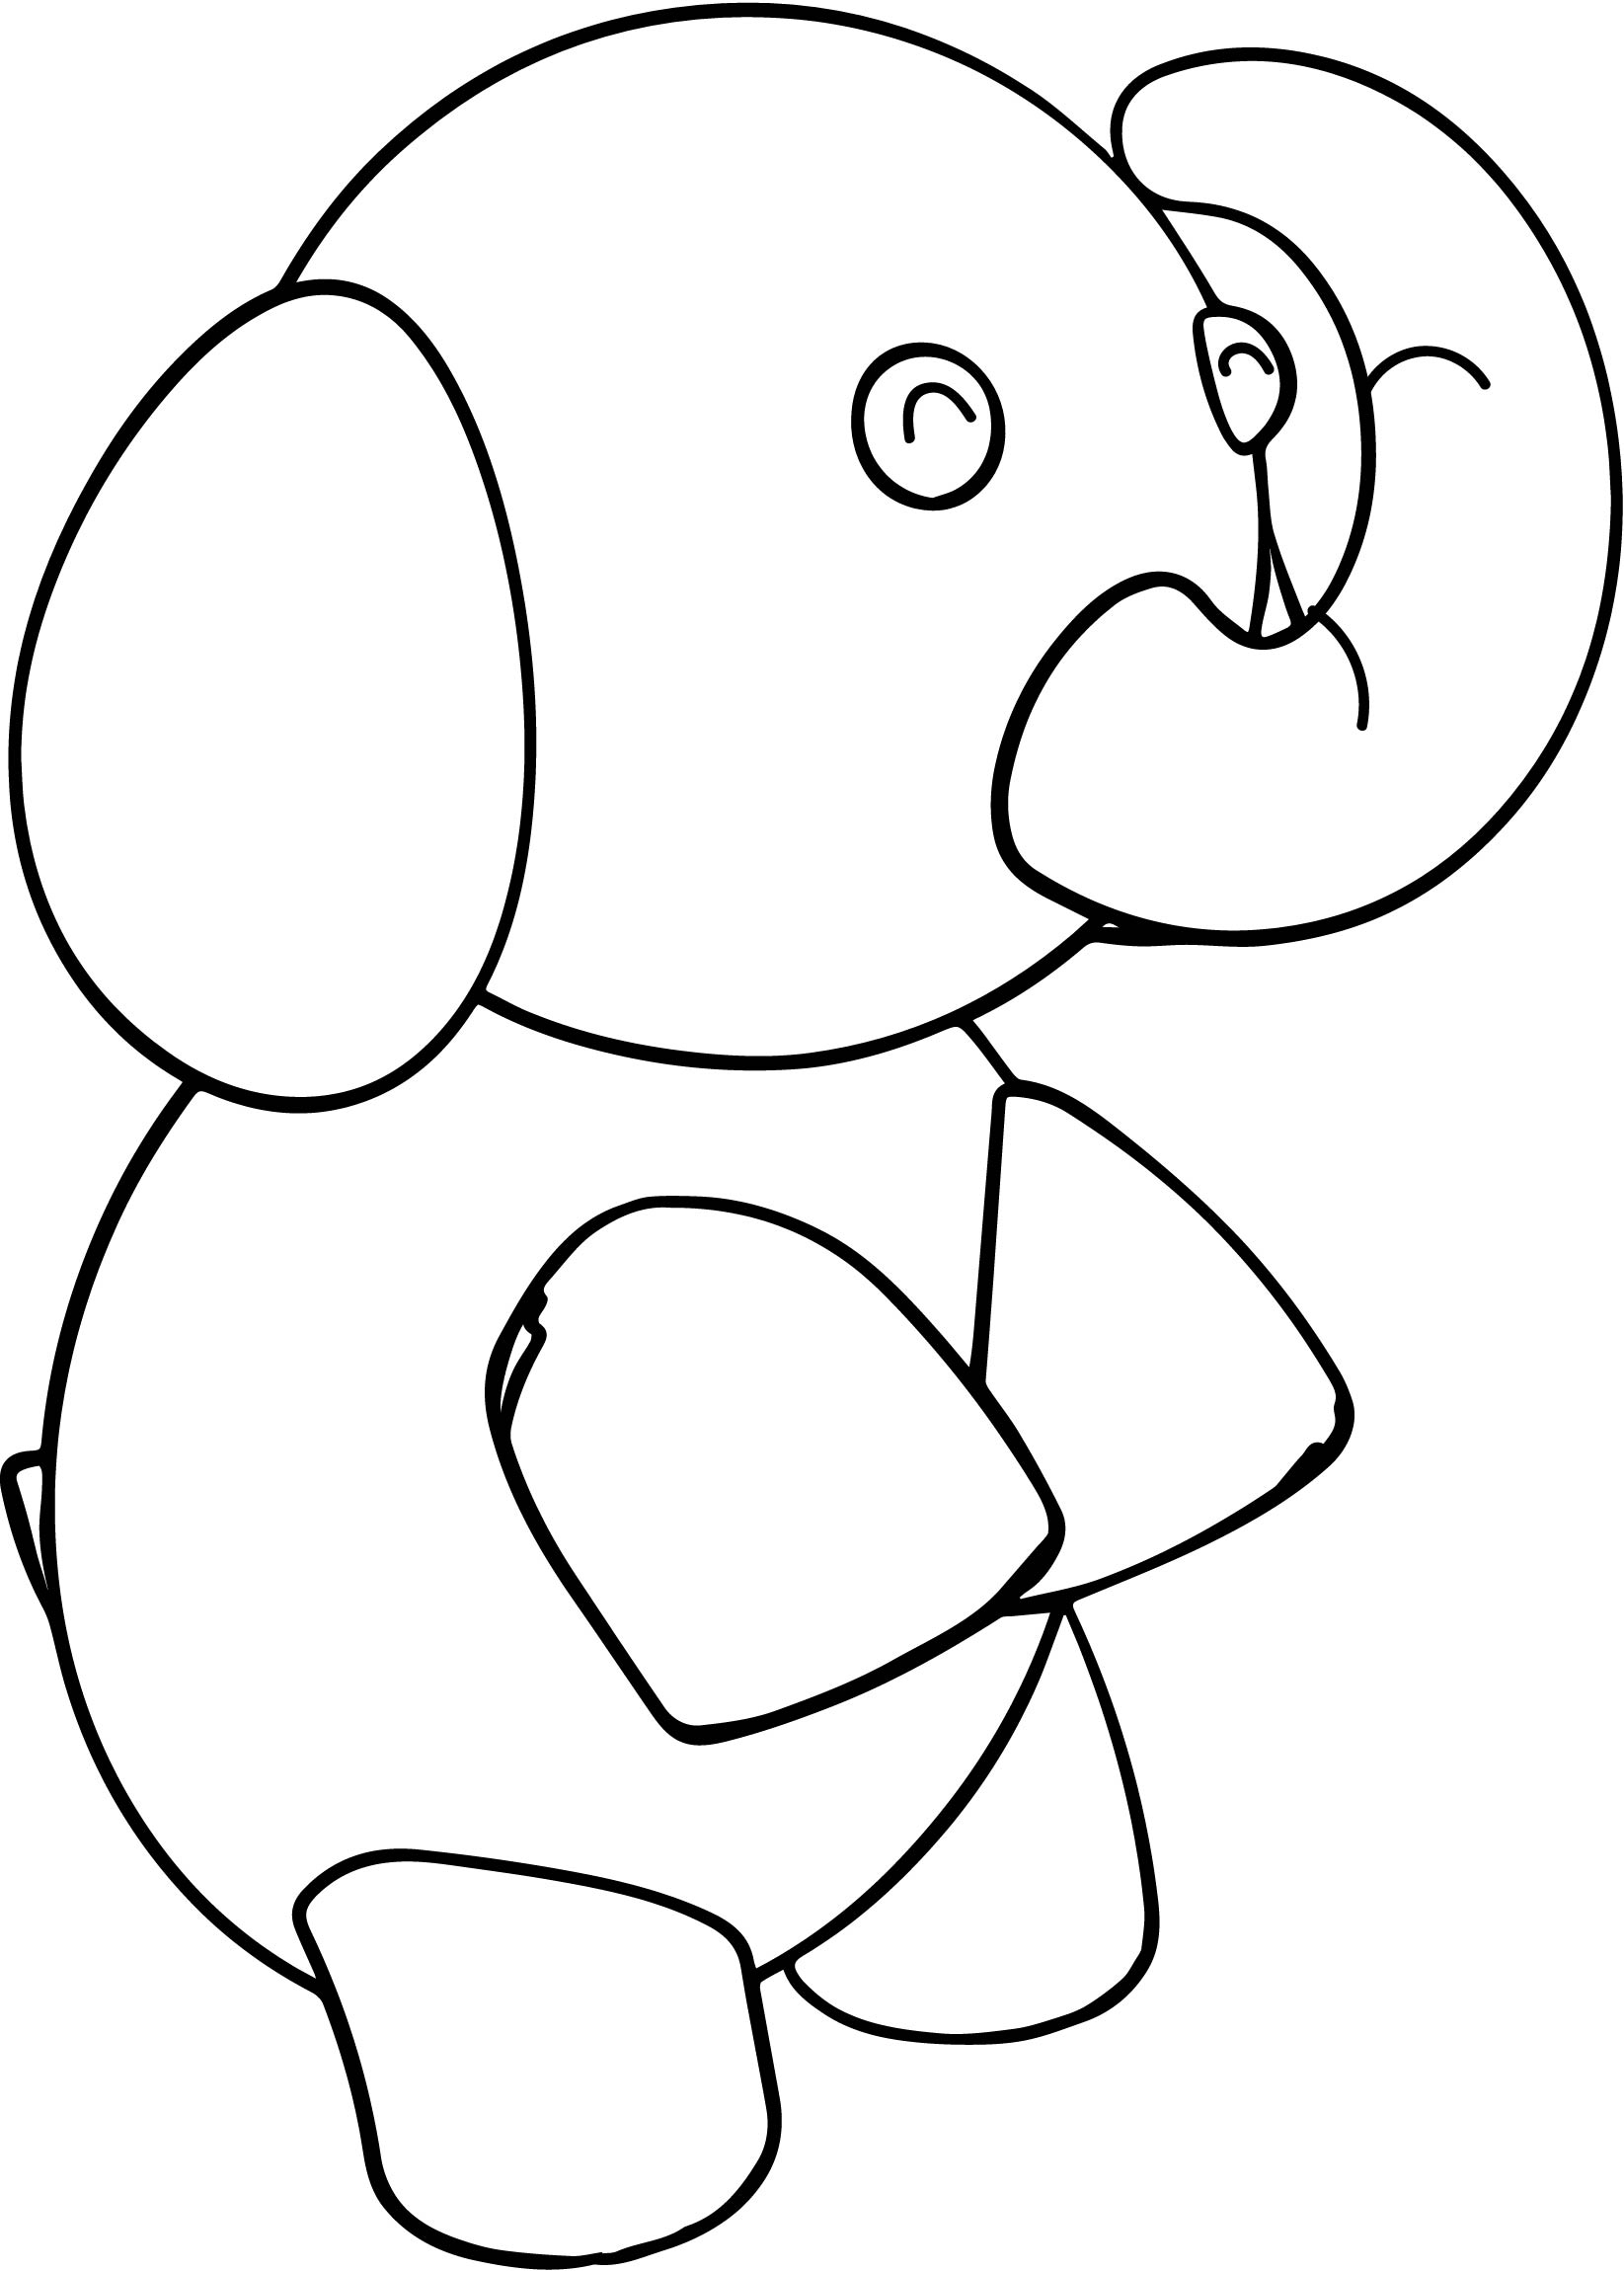 Up Walk Elephant Coloring Page